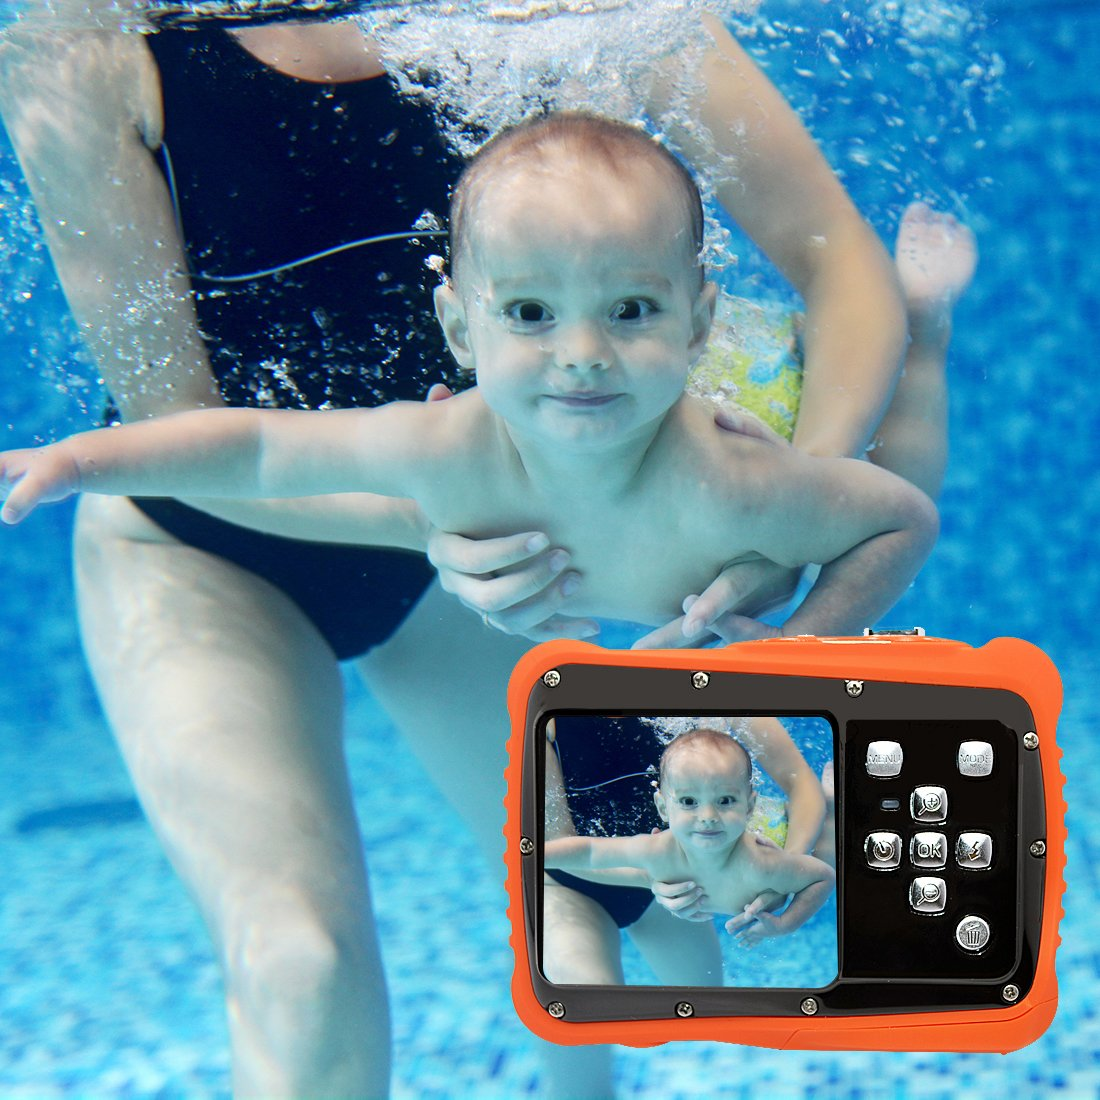 Underwater Action Digital Camera Camcorder for Kids, waterproof 3M/9.8ft, 5 MP CMOS 12MP 1080p, Orange by Oikkei (Image #5)